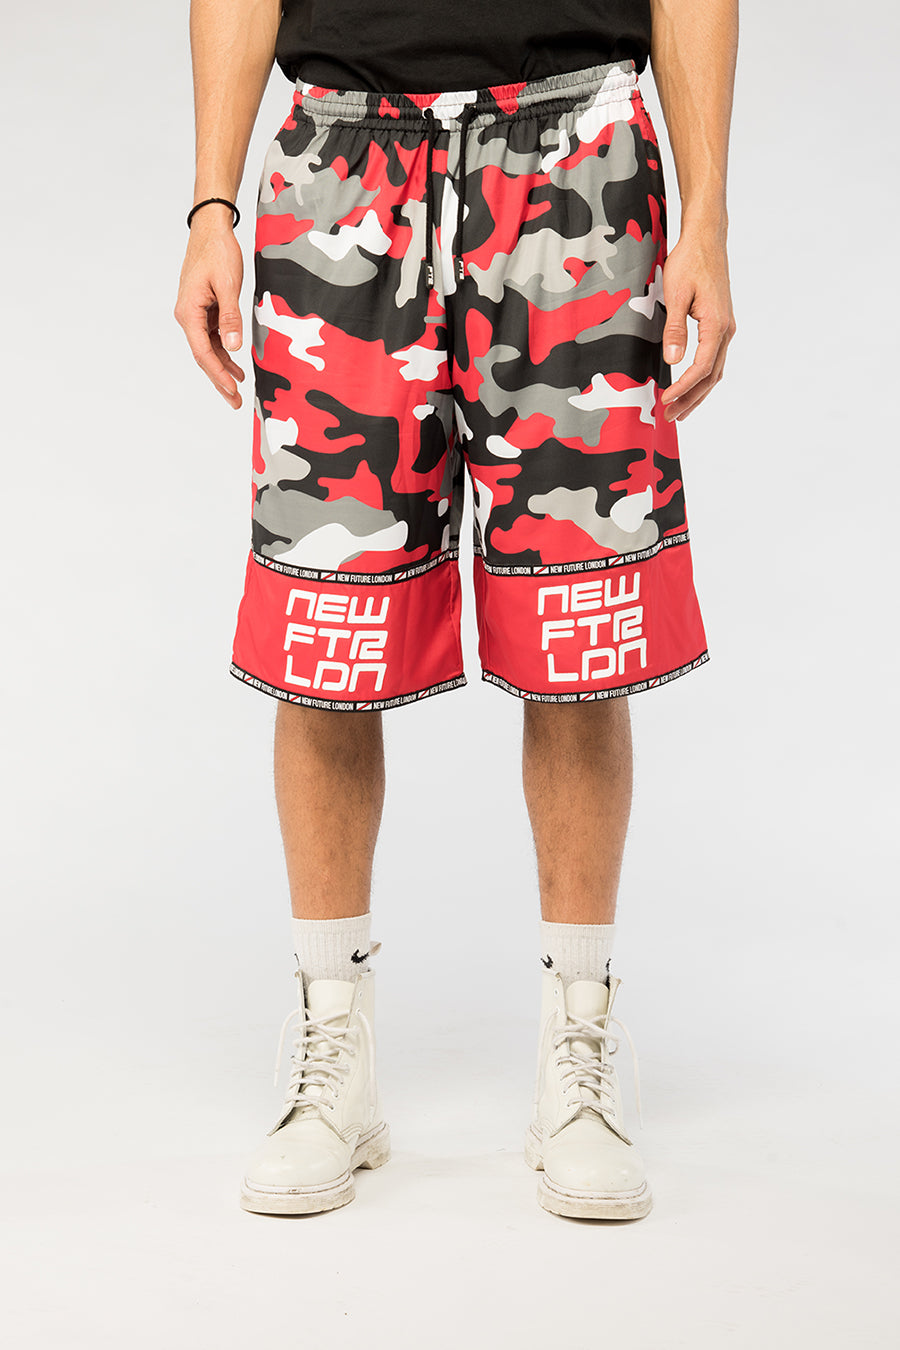 new_future_london_racer_shorts_camo_red-1.jpg